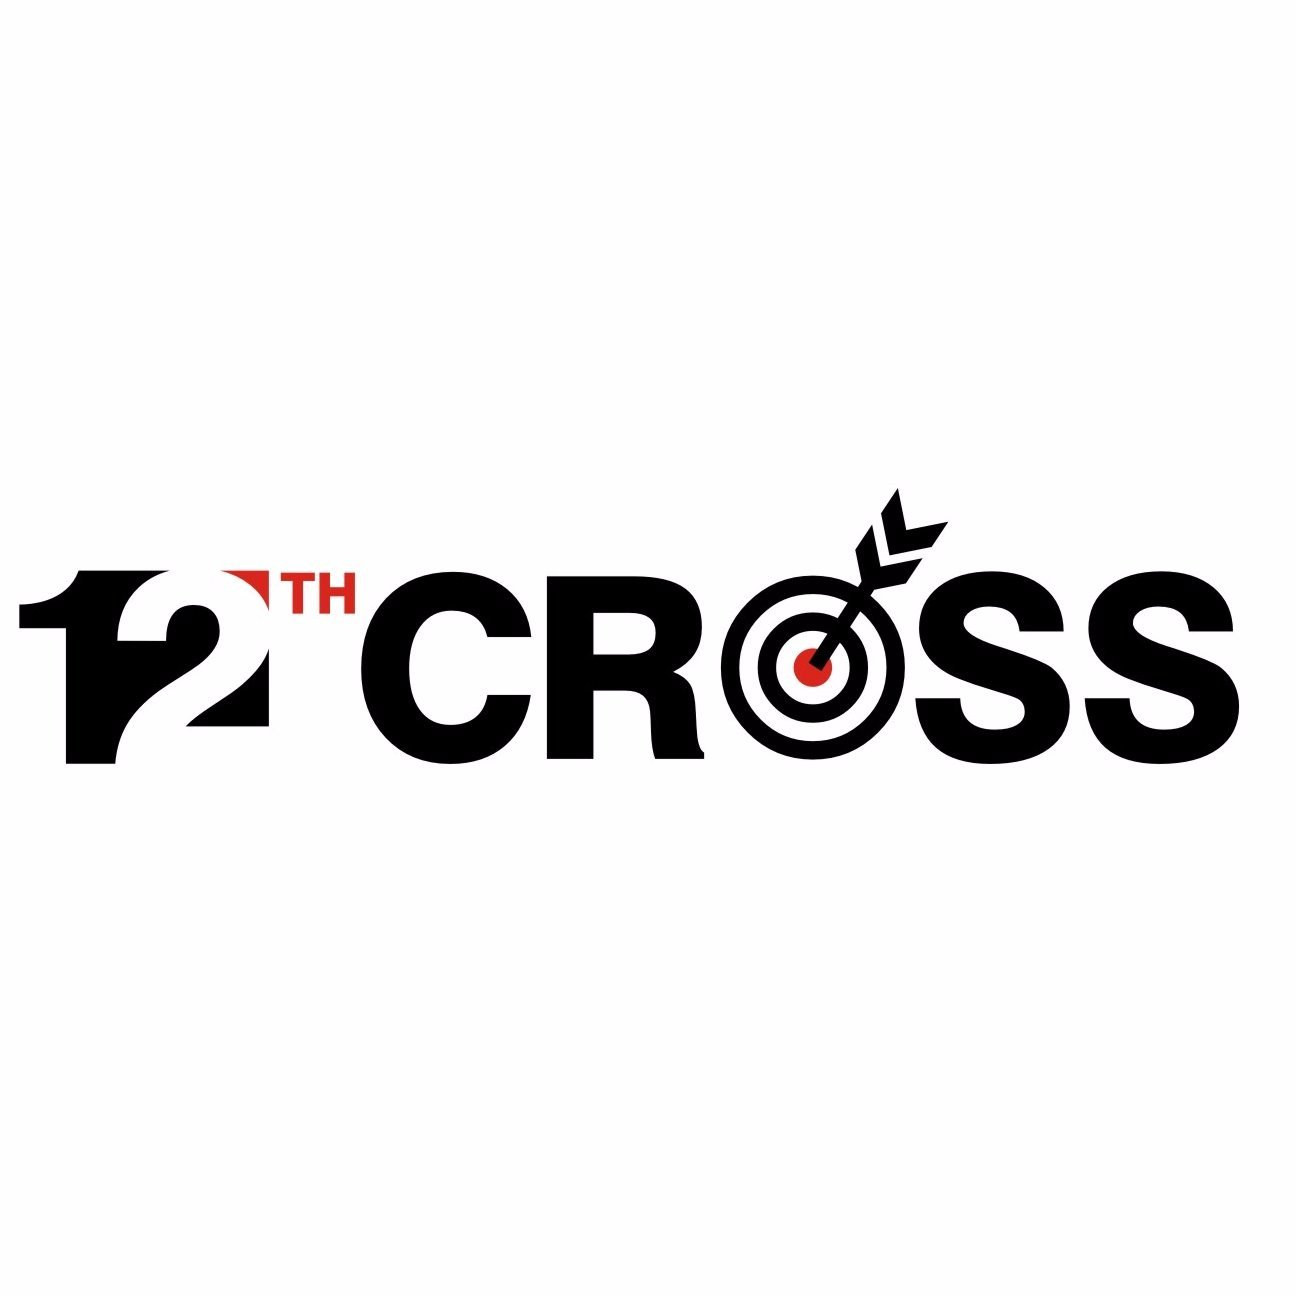 12th Cross